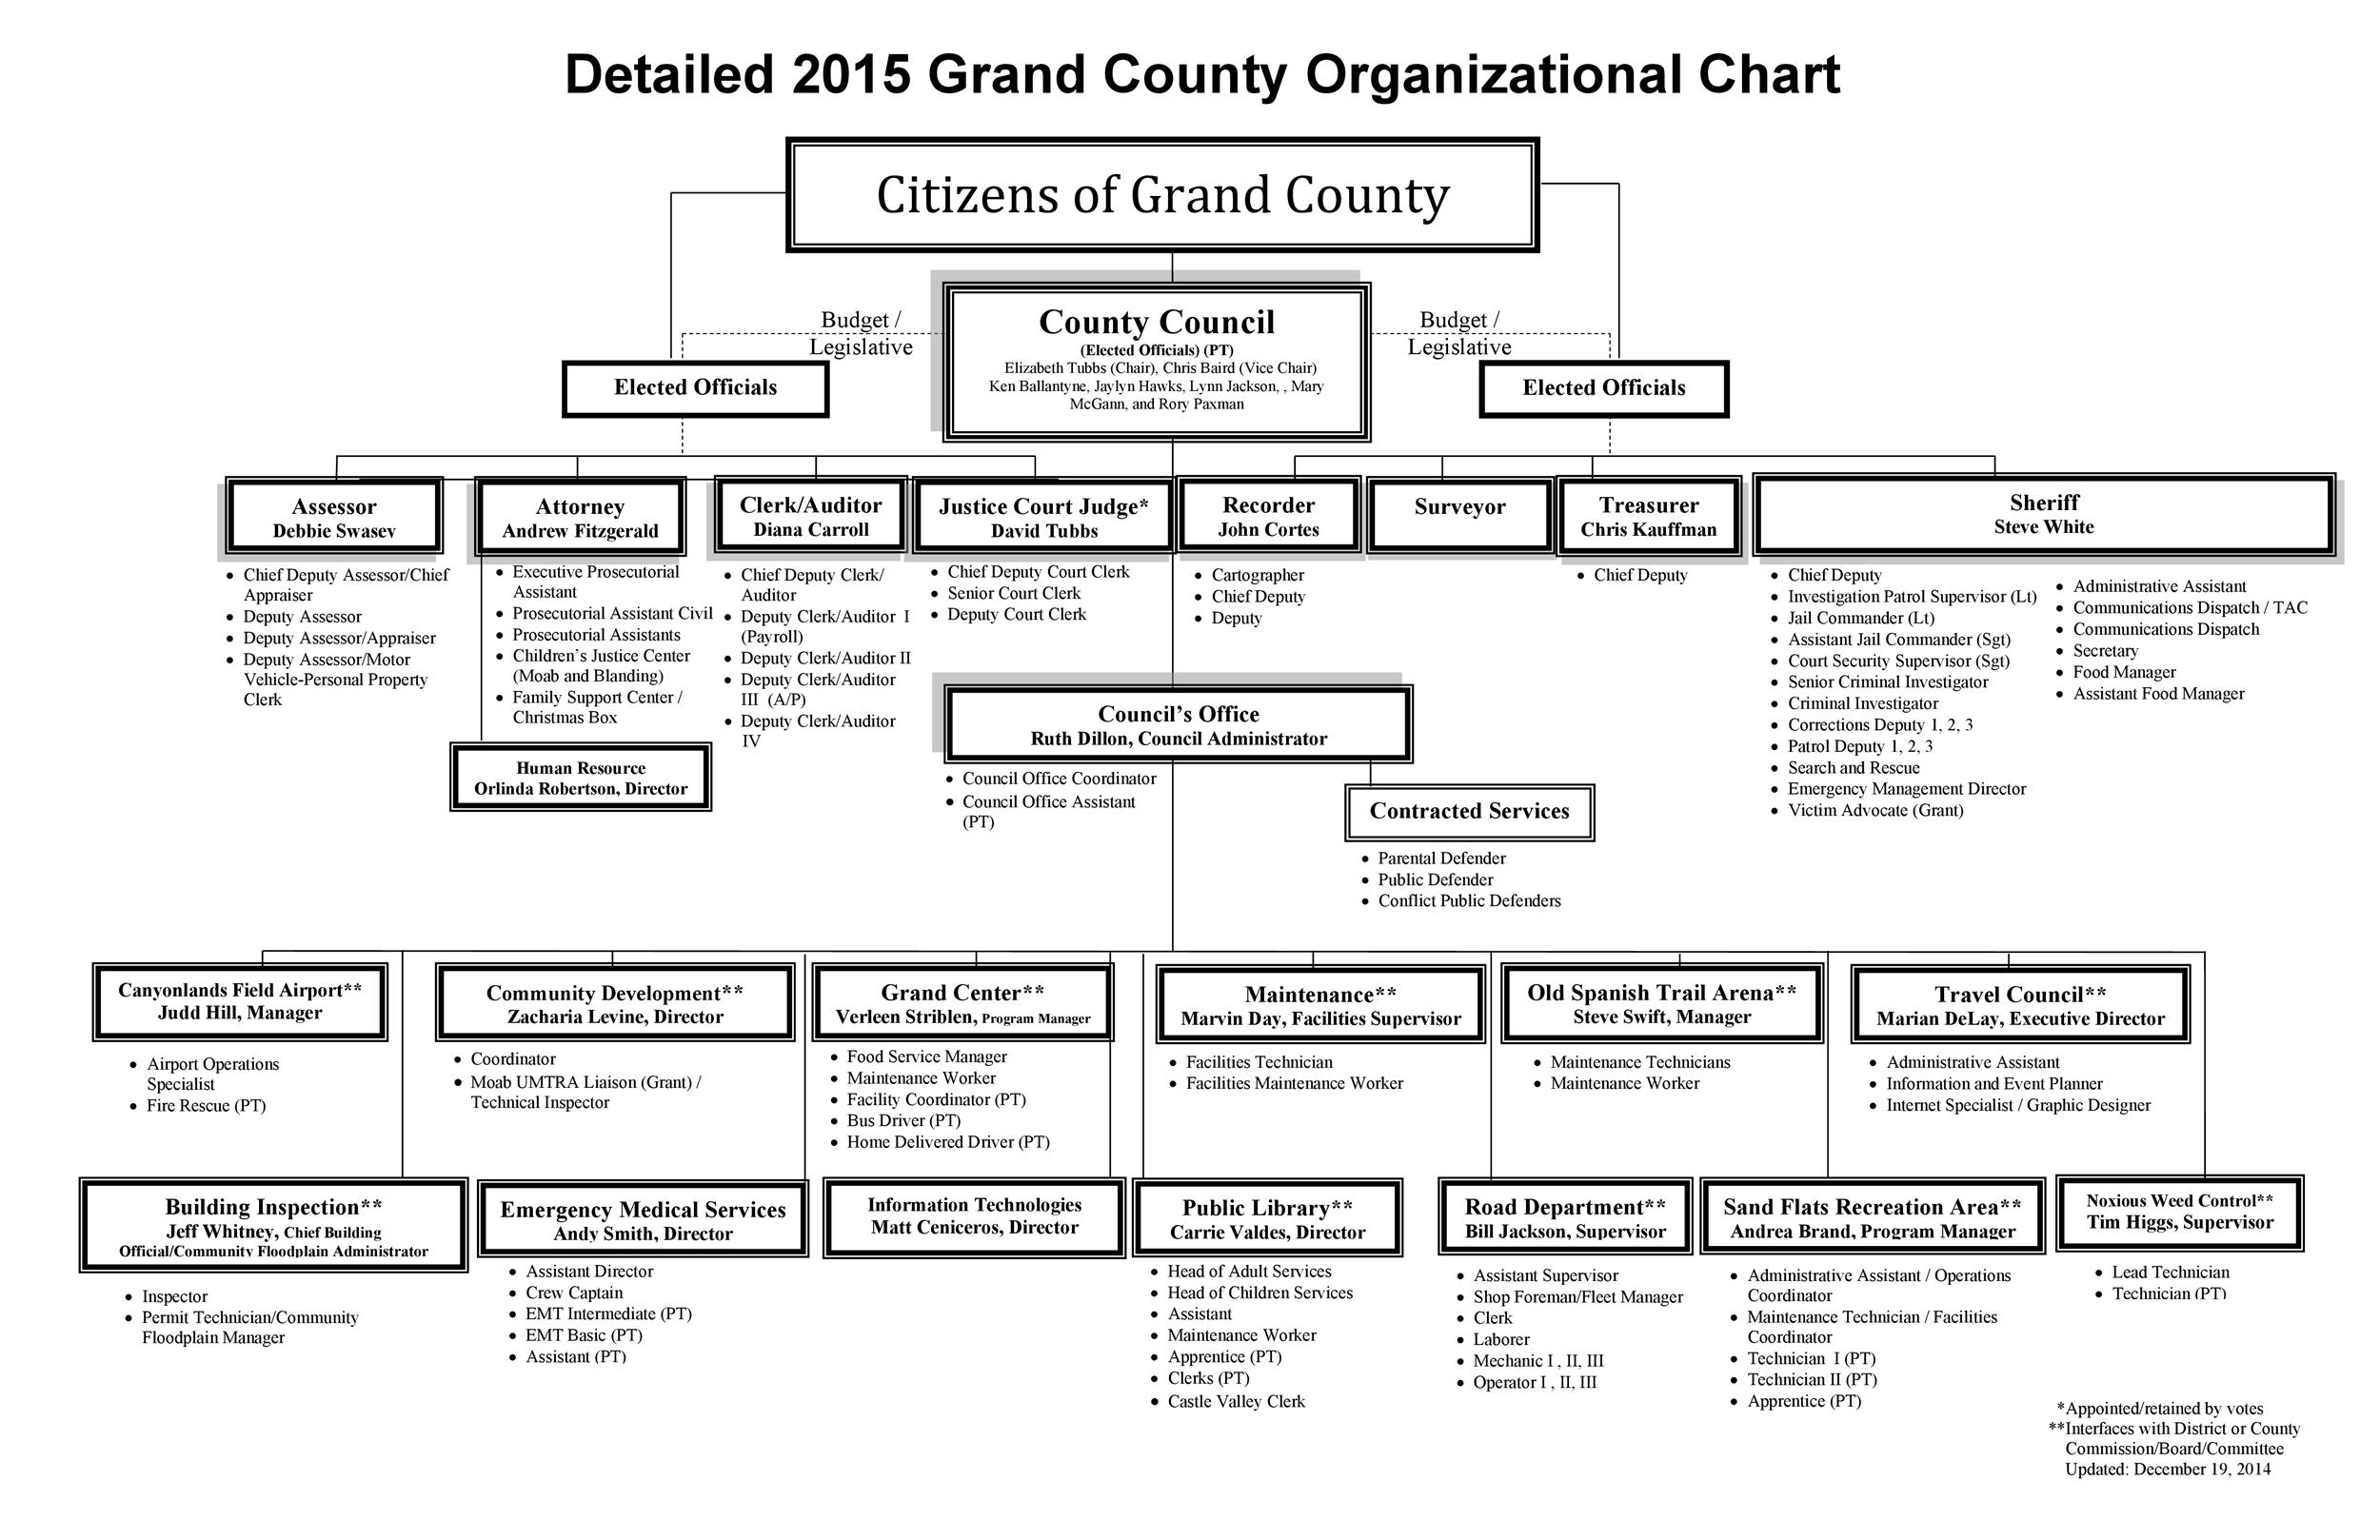 40 organizational chart templates word excel powerpoint free organizational chart template 15 cheaphphosting Image collections